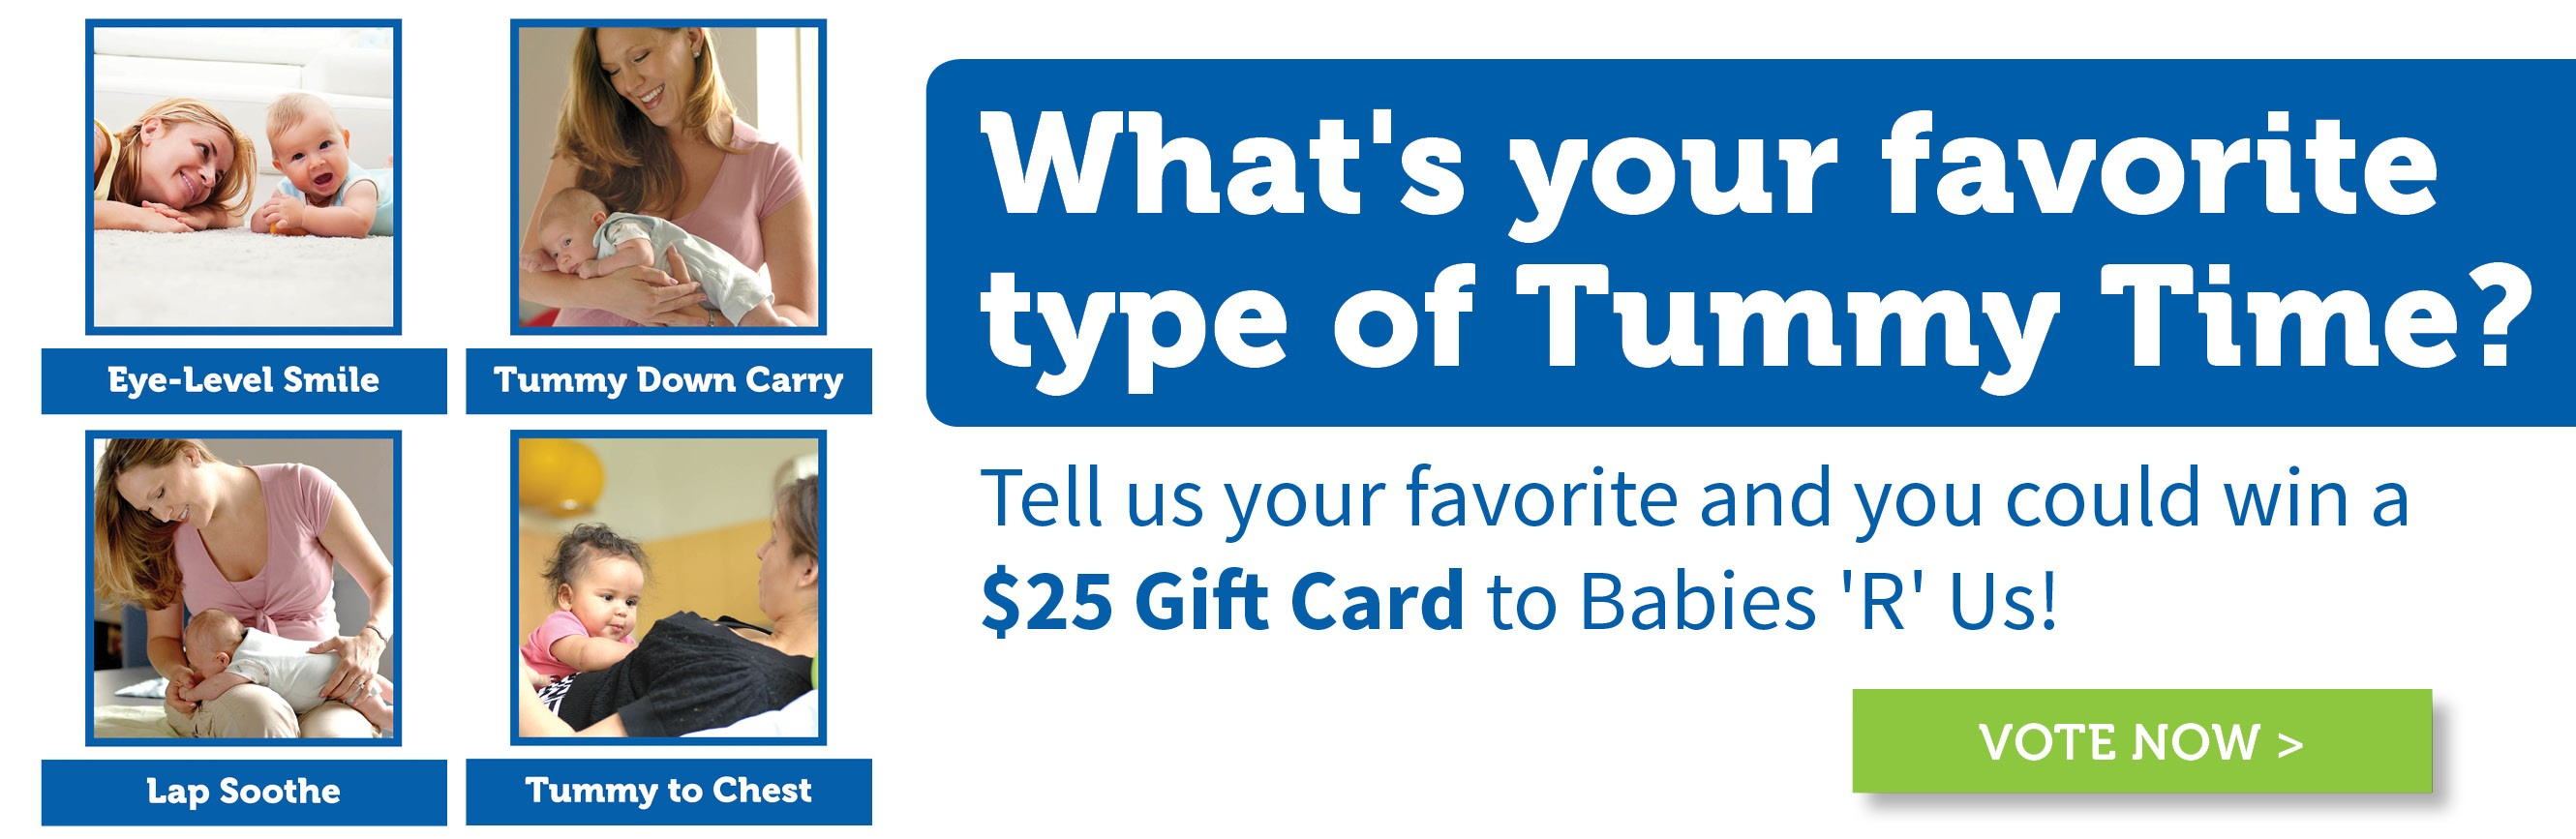 Vote now for a chance to win a $25 gift certificate!